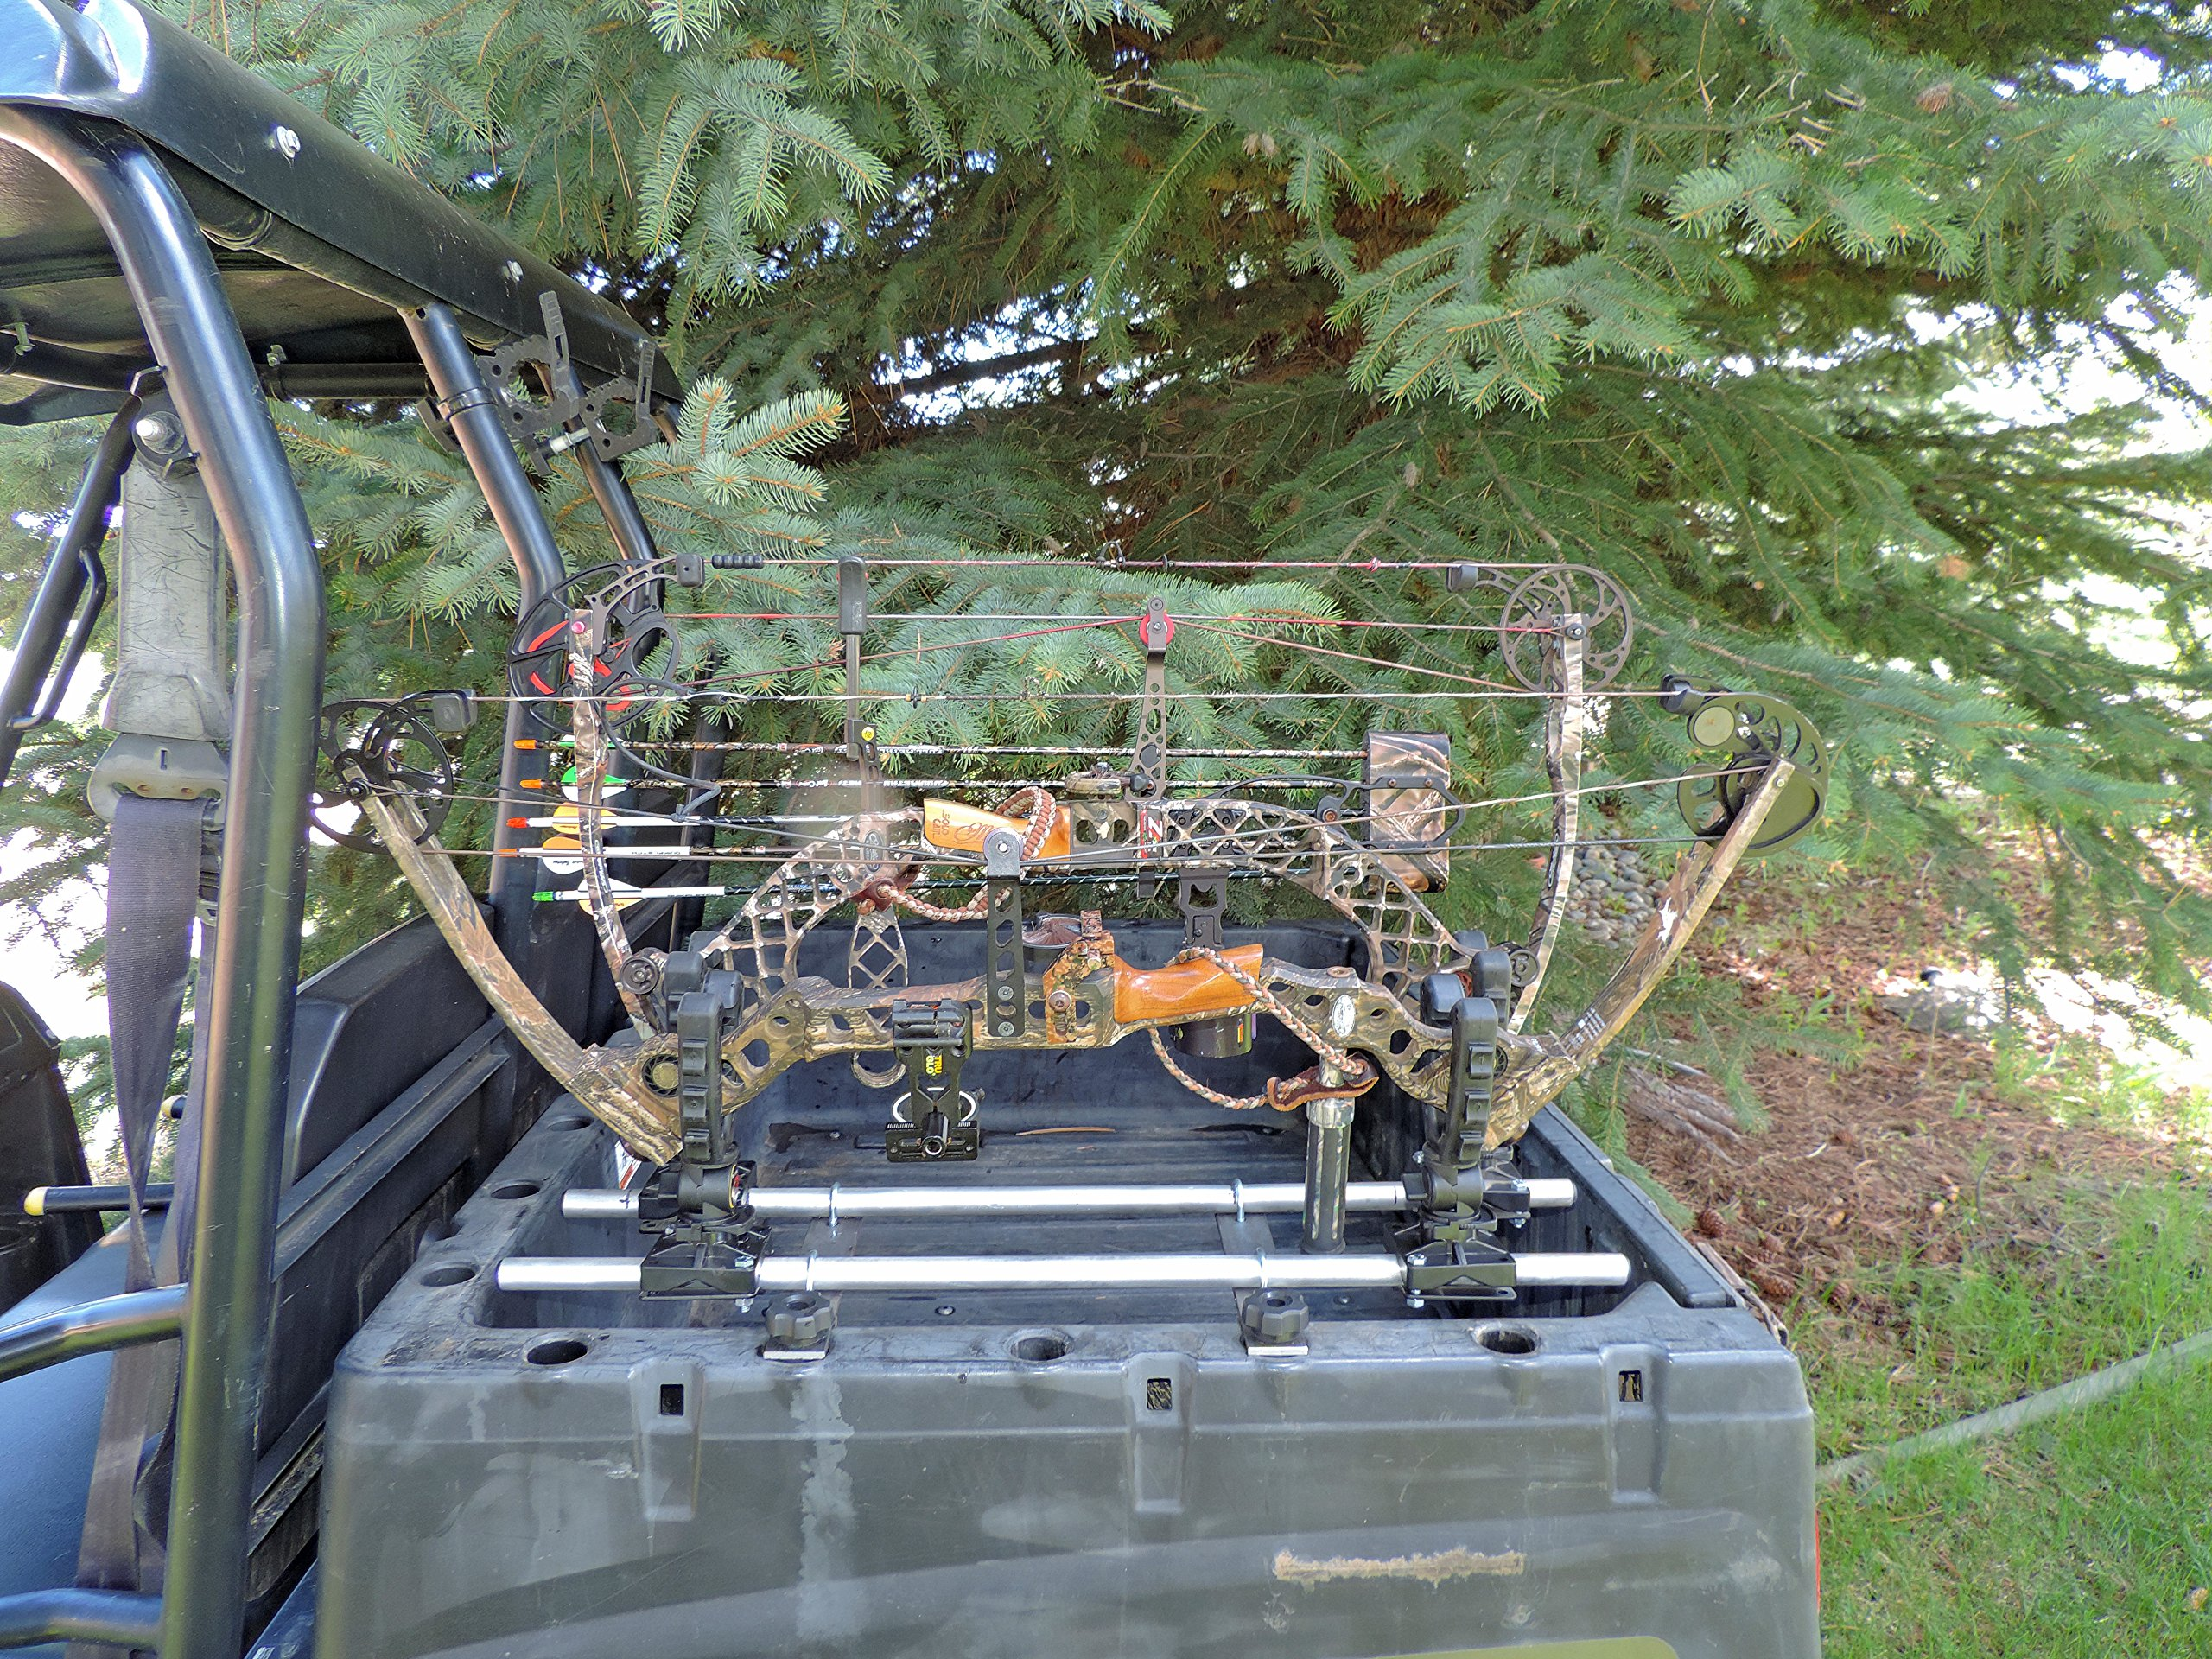 Polaris Ranger and General Single Bow Carrier Hornet Outdoors Made in USA Steel Powder Coated Includes Anchors R-3028 S by Hornet Outdoors